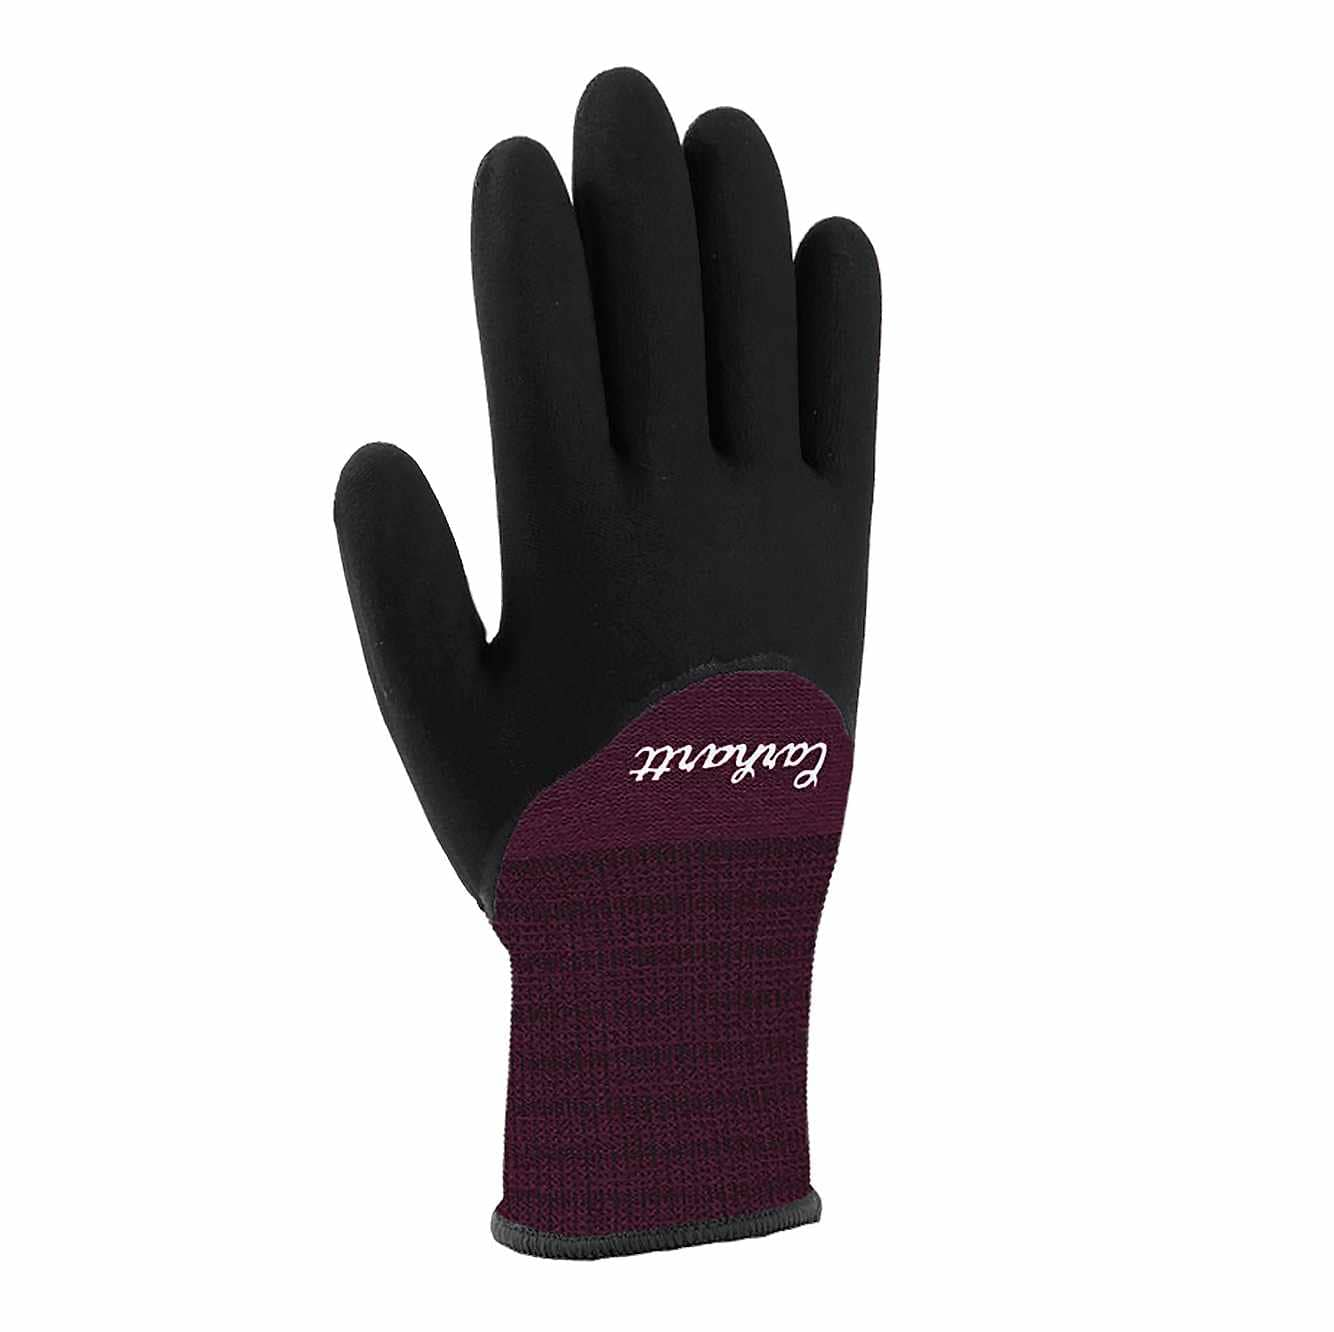 Picture of Thermal Full-Coverage Nitrile Grip Glove in Deep Wine